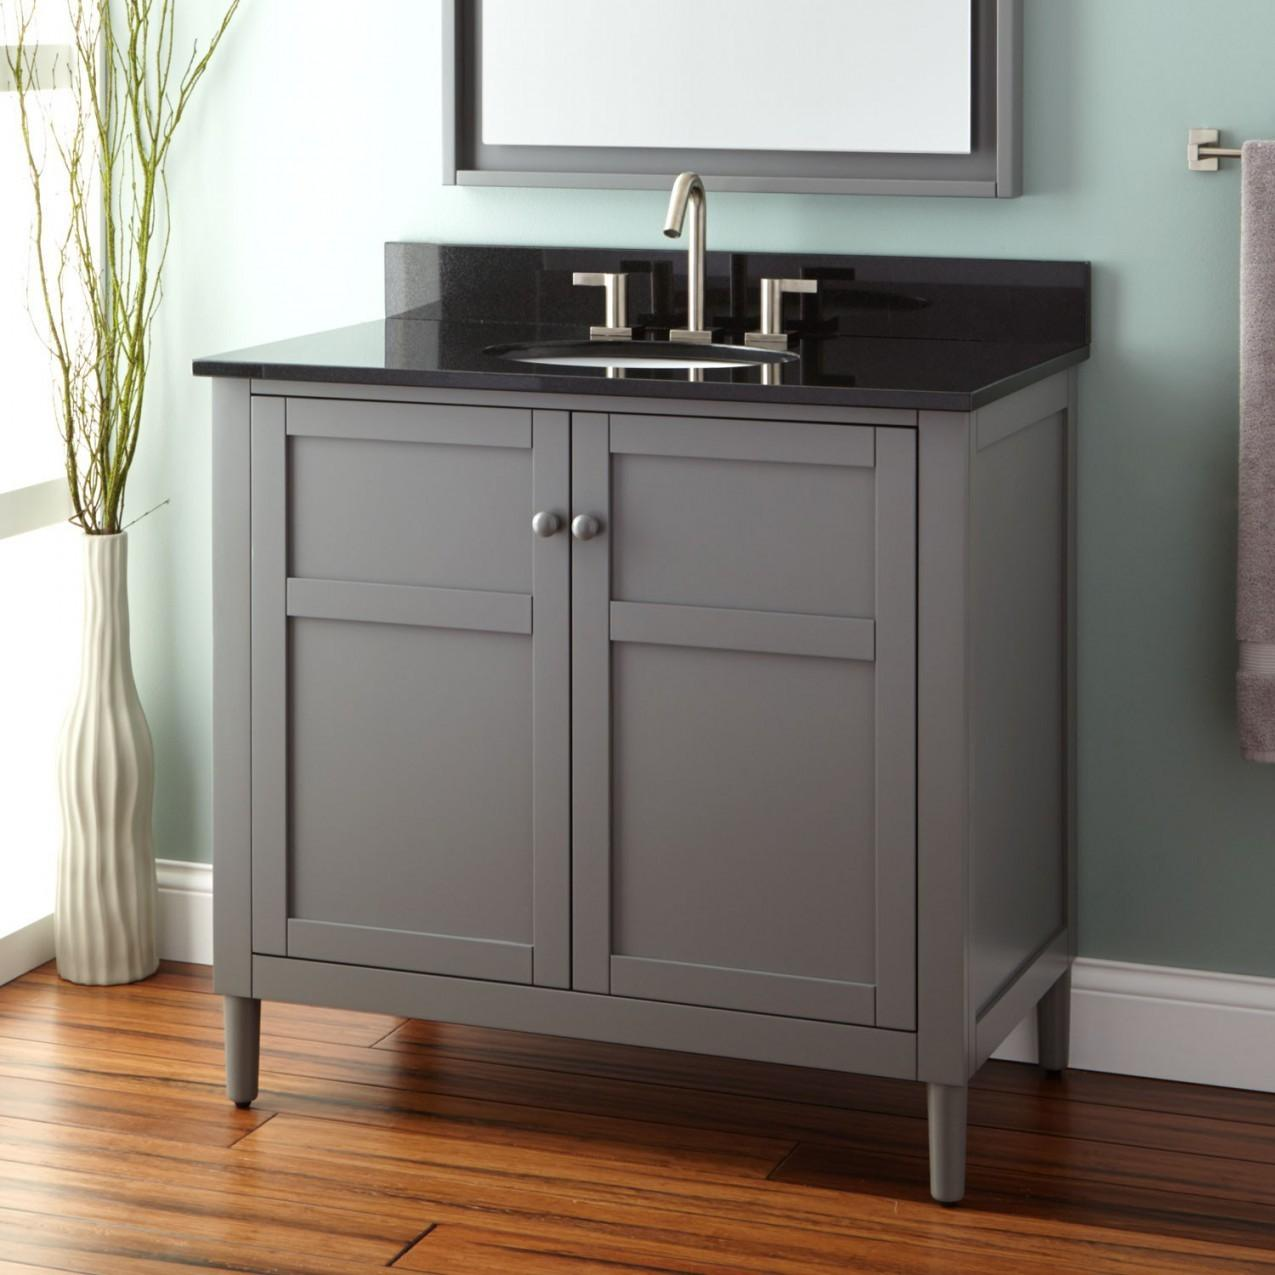 100 Bathroom Undermount Sinks Contemporary